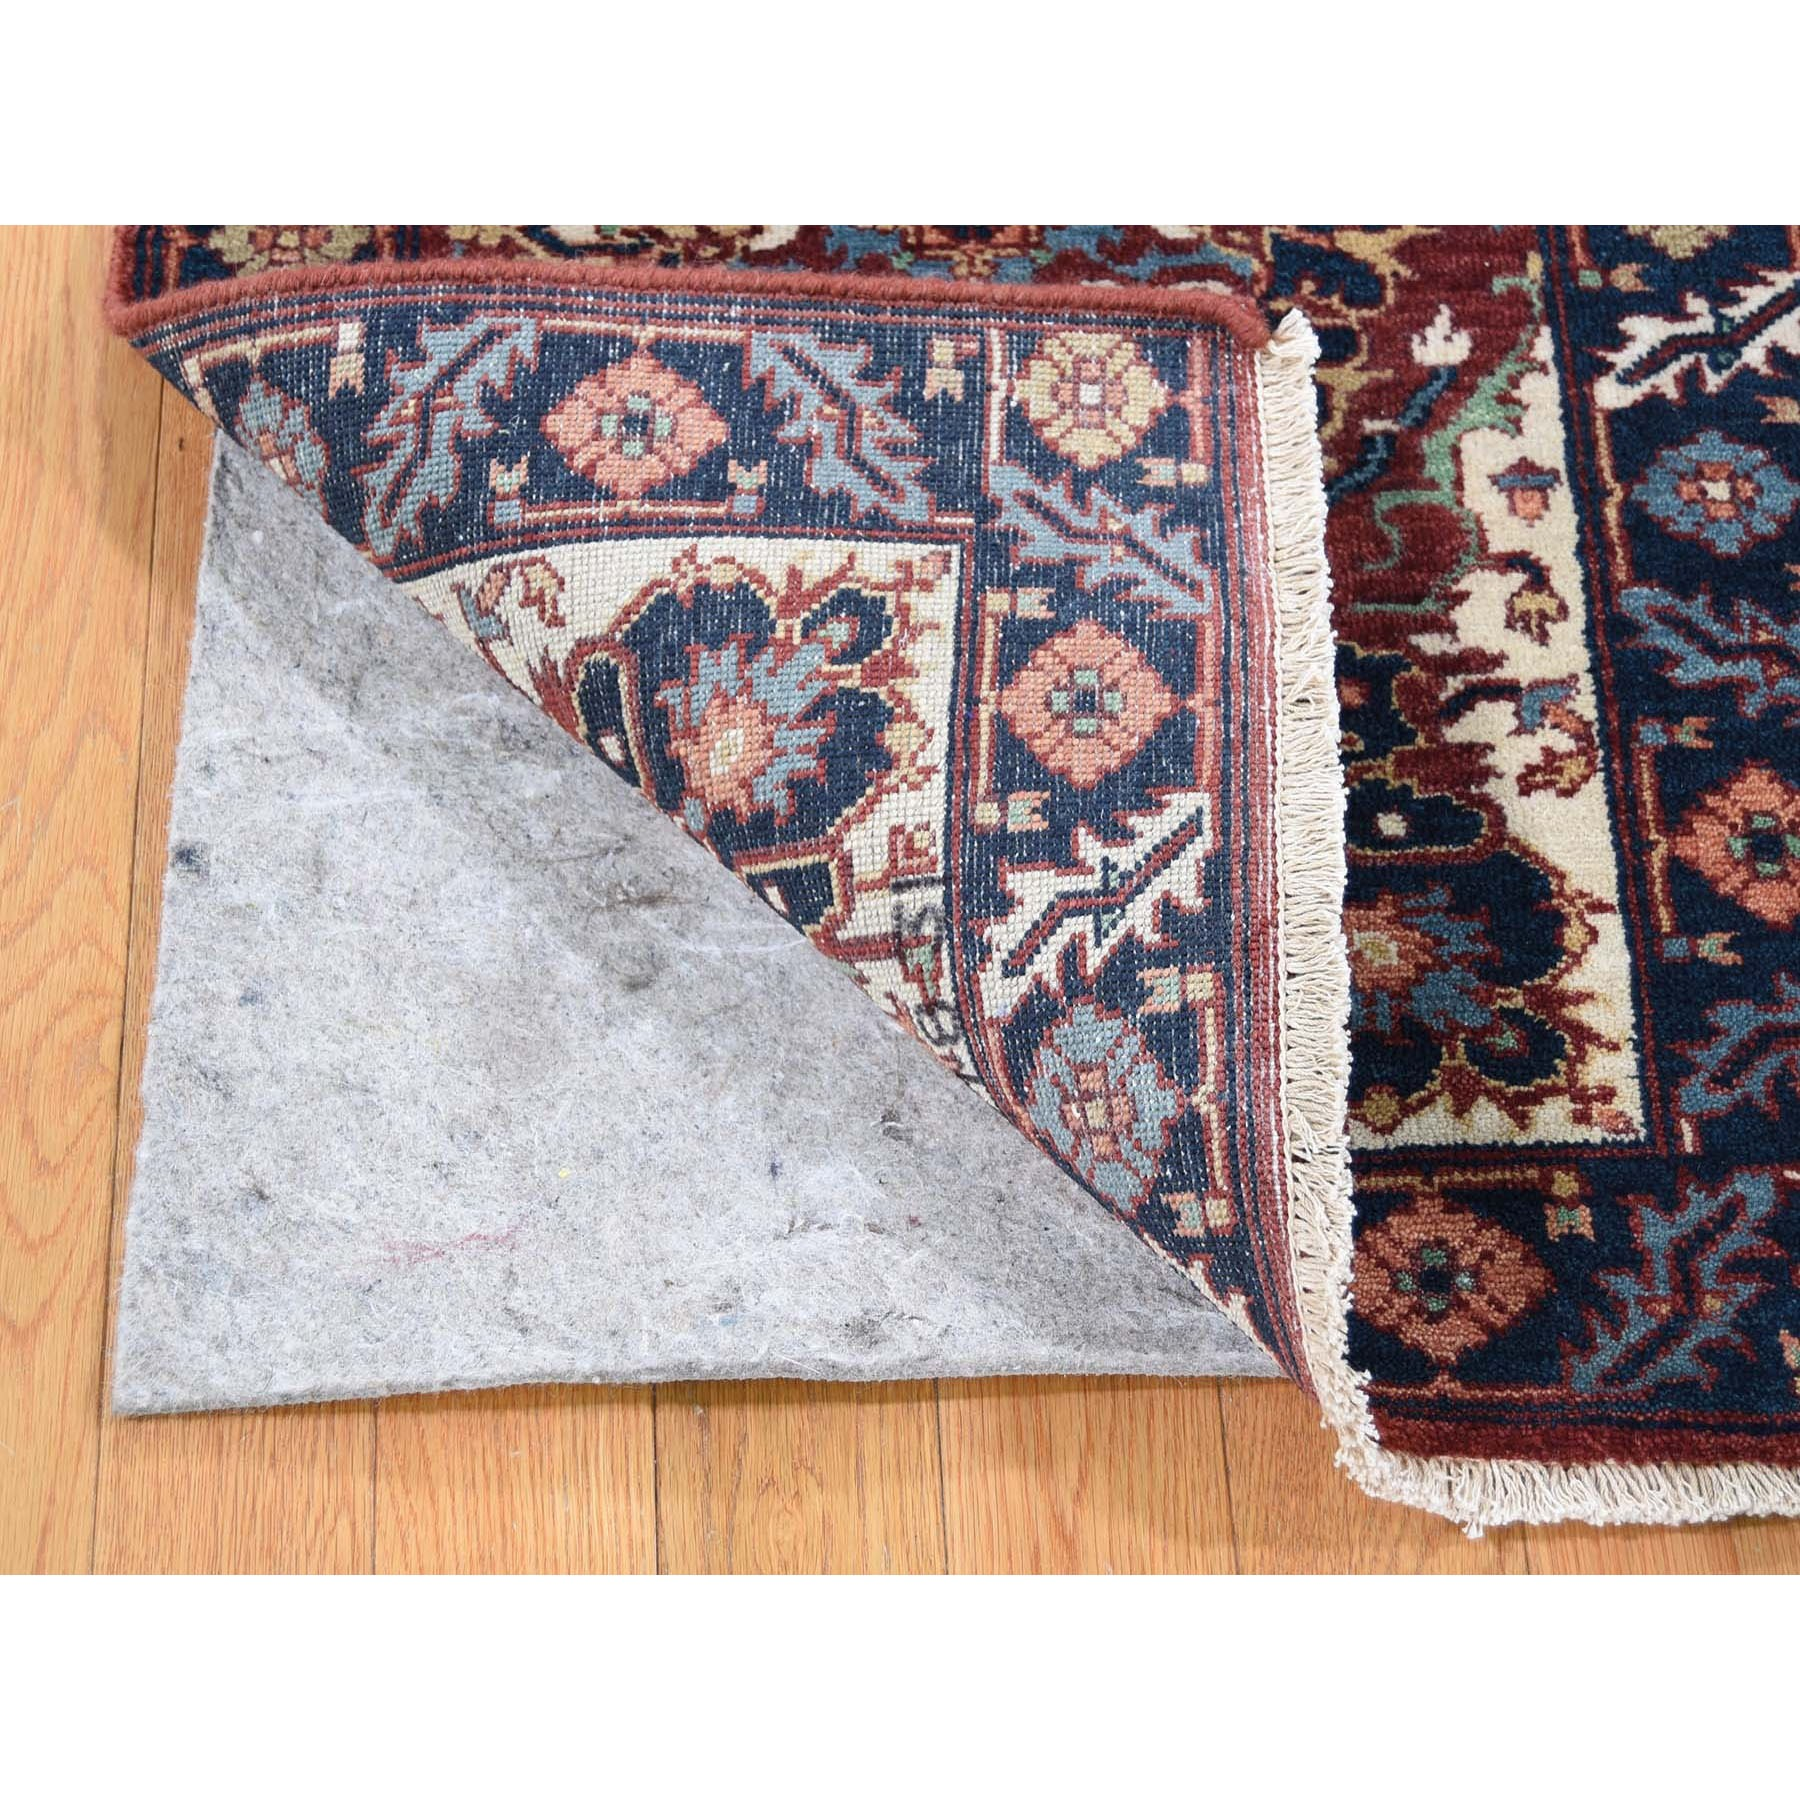 2'x3' Antiqued Heriz Re-creation Hand-Knotted Pure Wool Oriental Rug